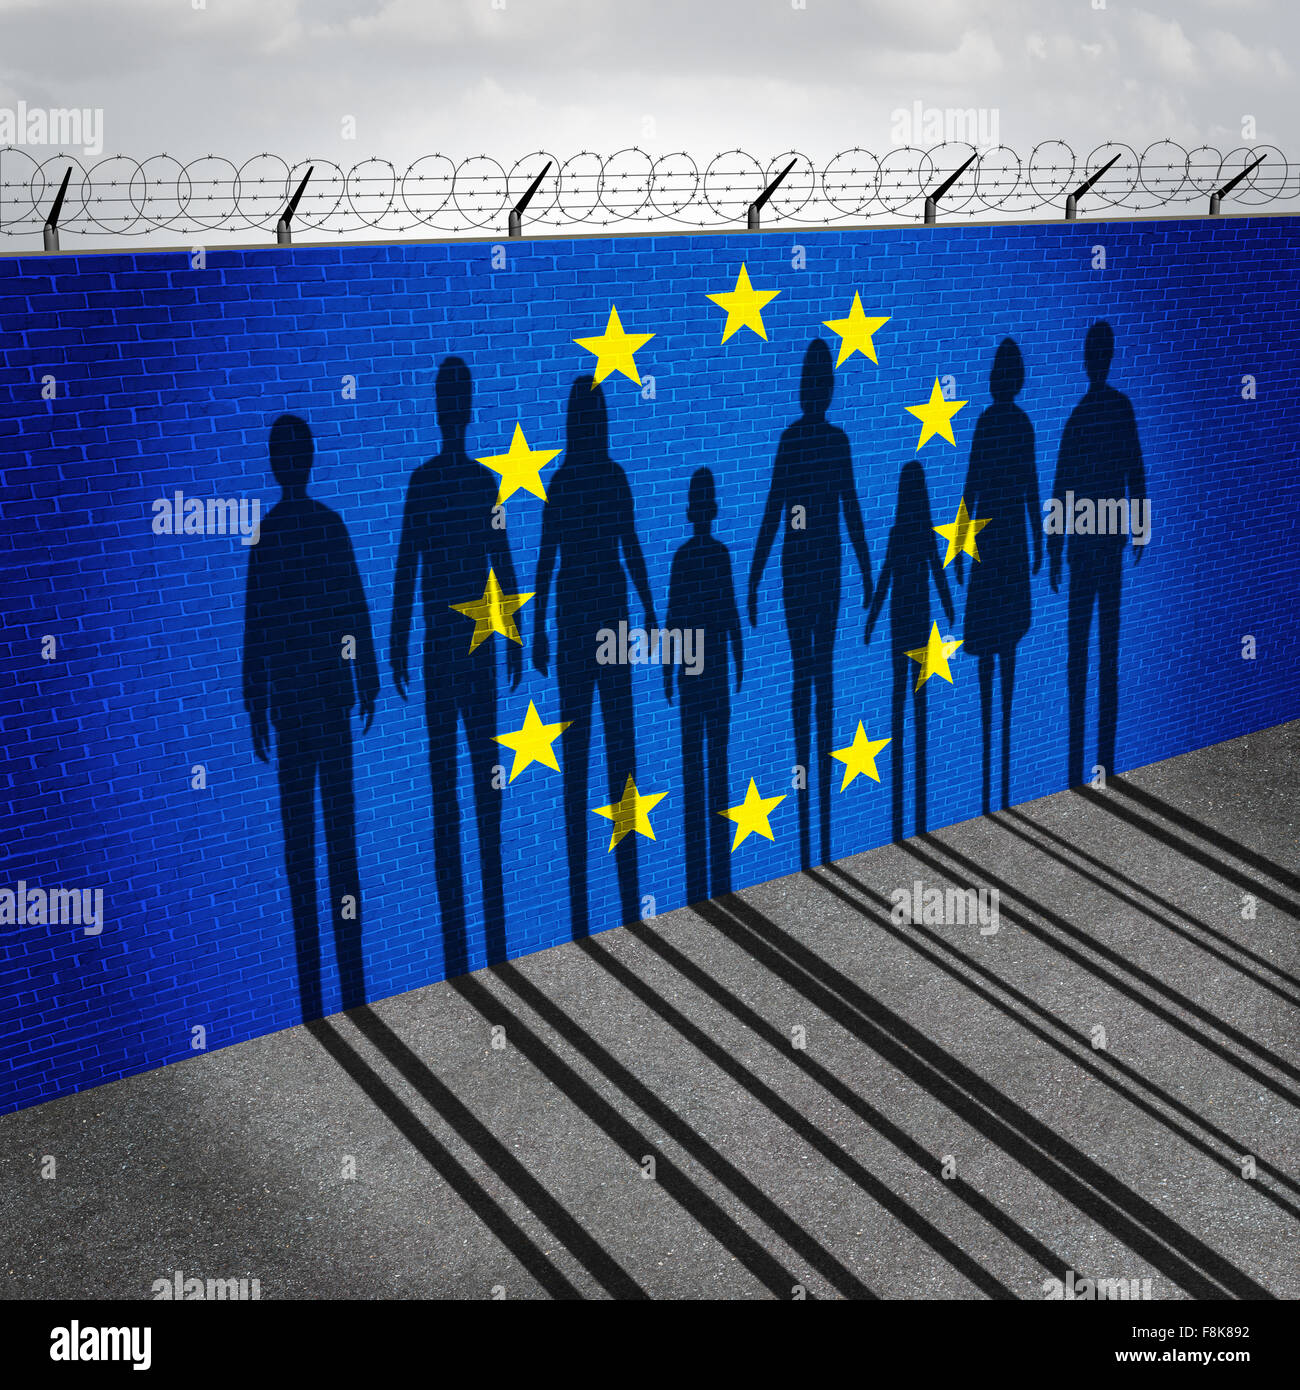 Europe immigration and european refugee crisis concept as people on a border wall with a Eurozone flag as a social - Stock Image